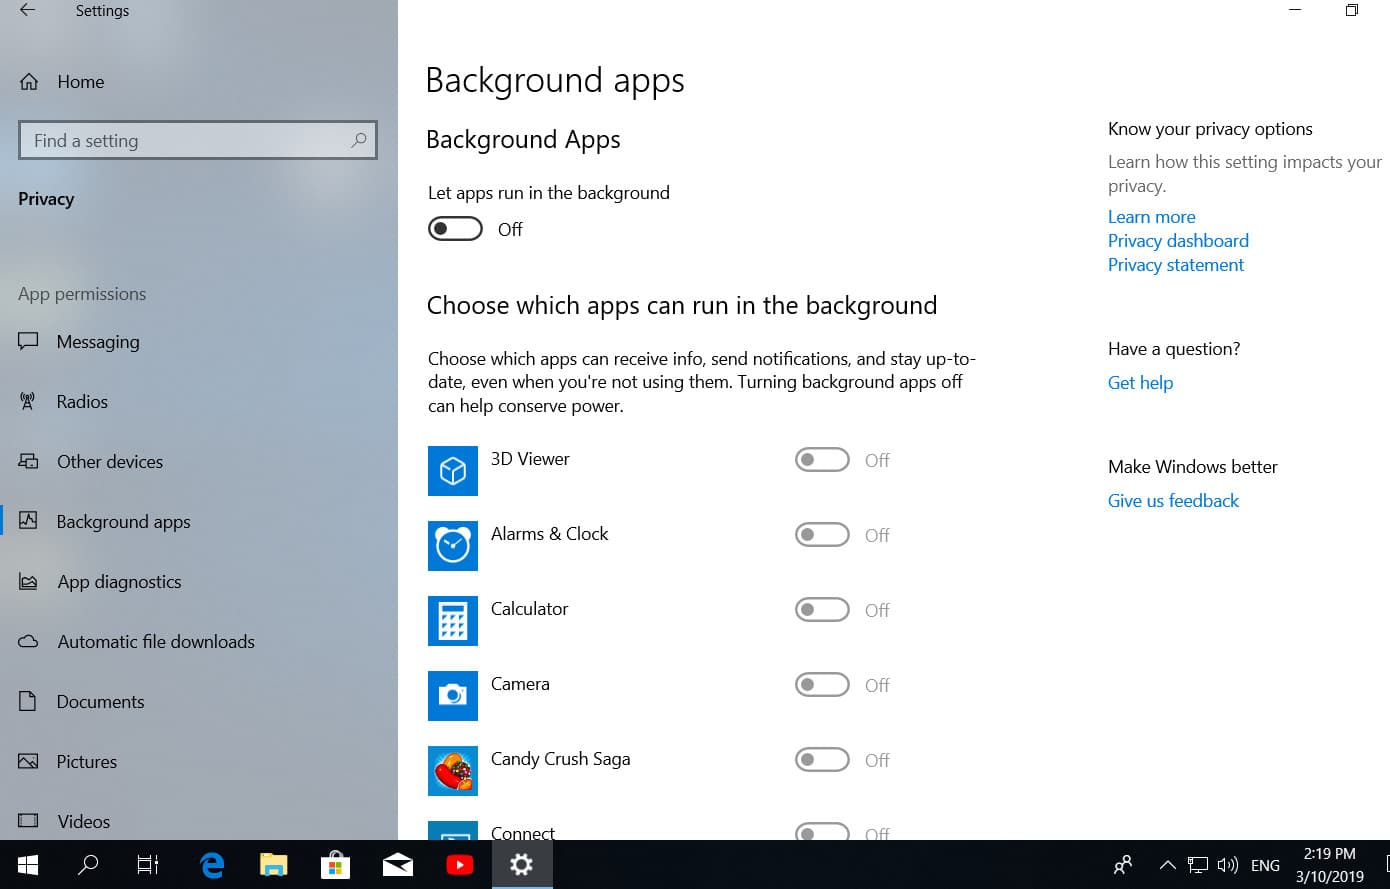 turn off background apps in Windows 10